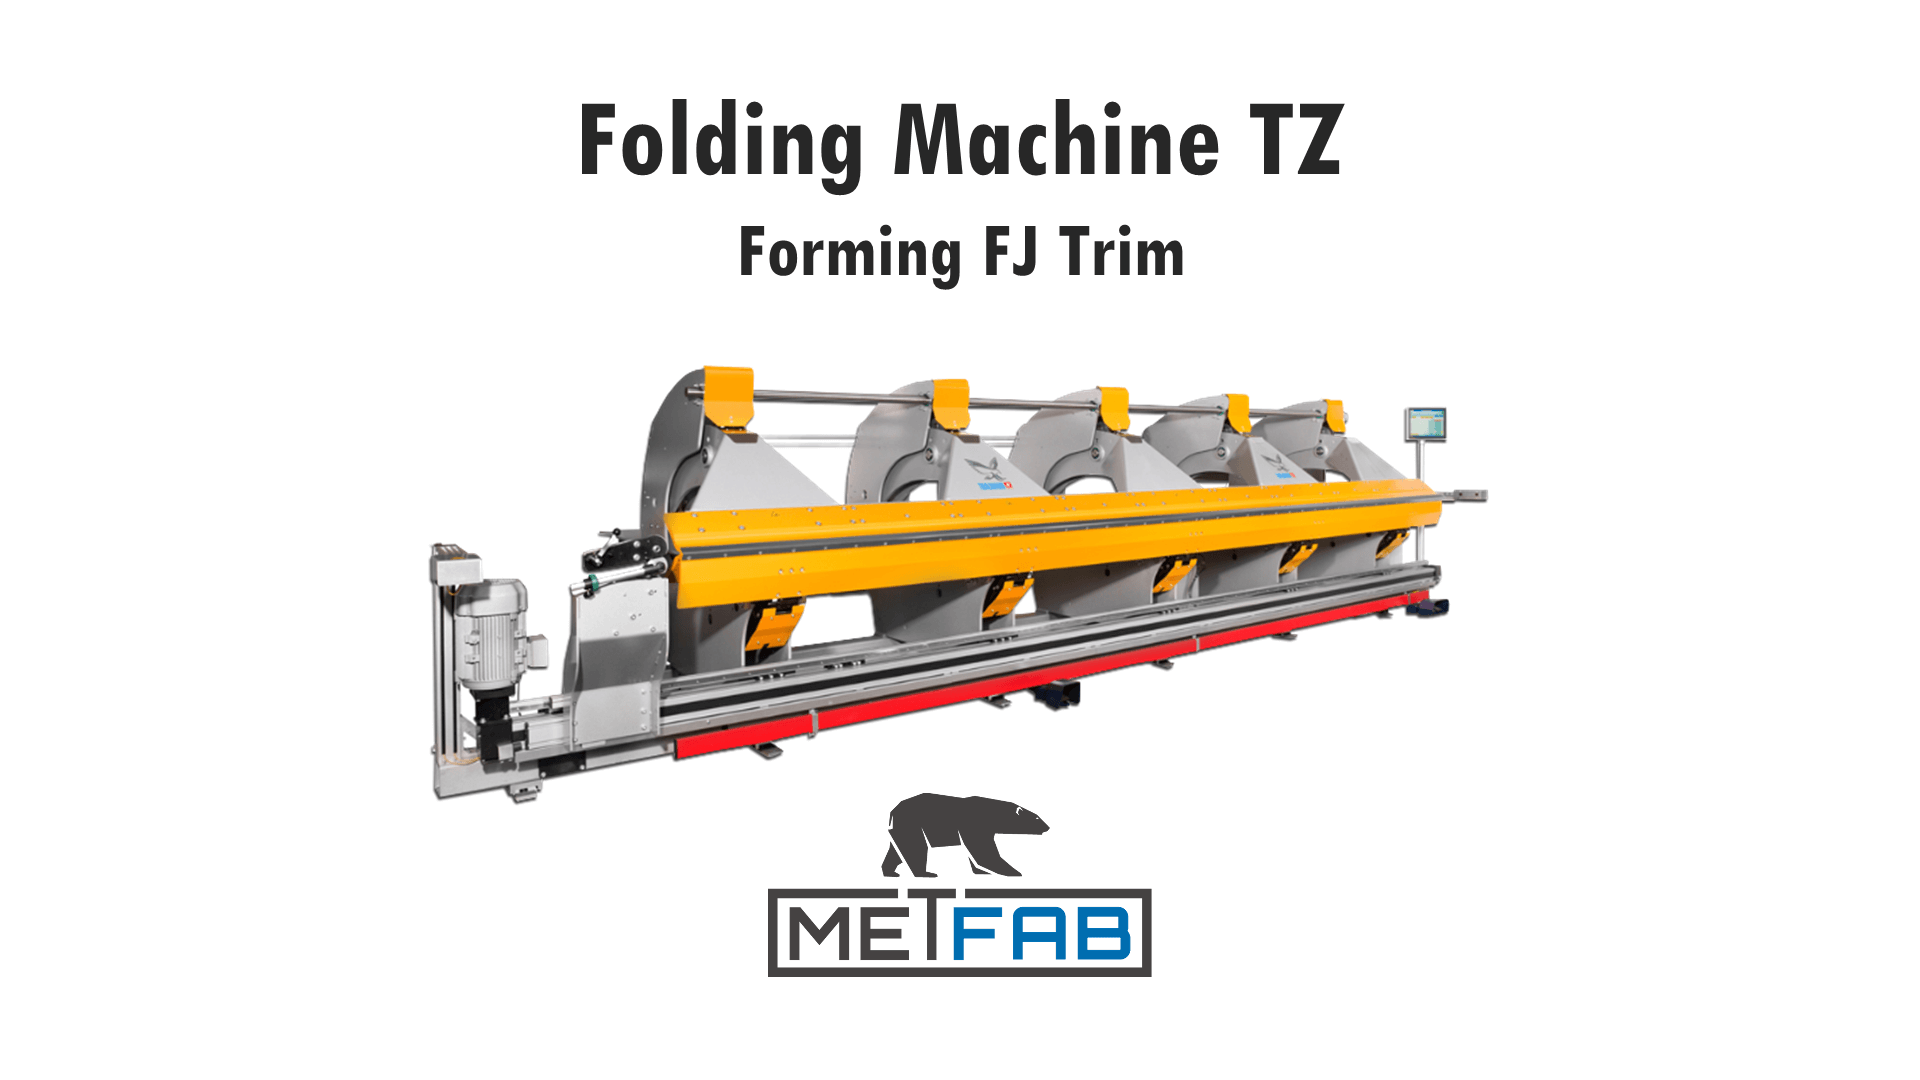 TZ folding machine - Form a JF trim